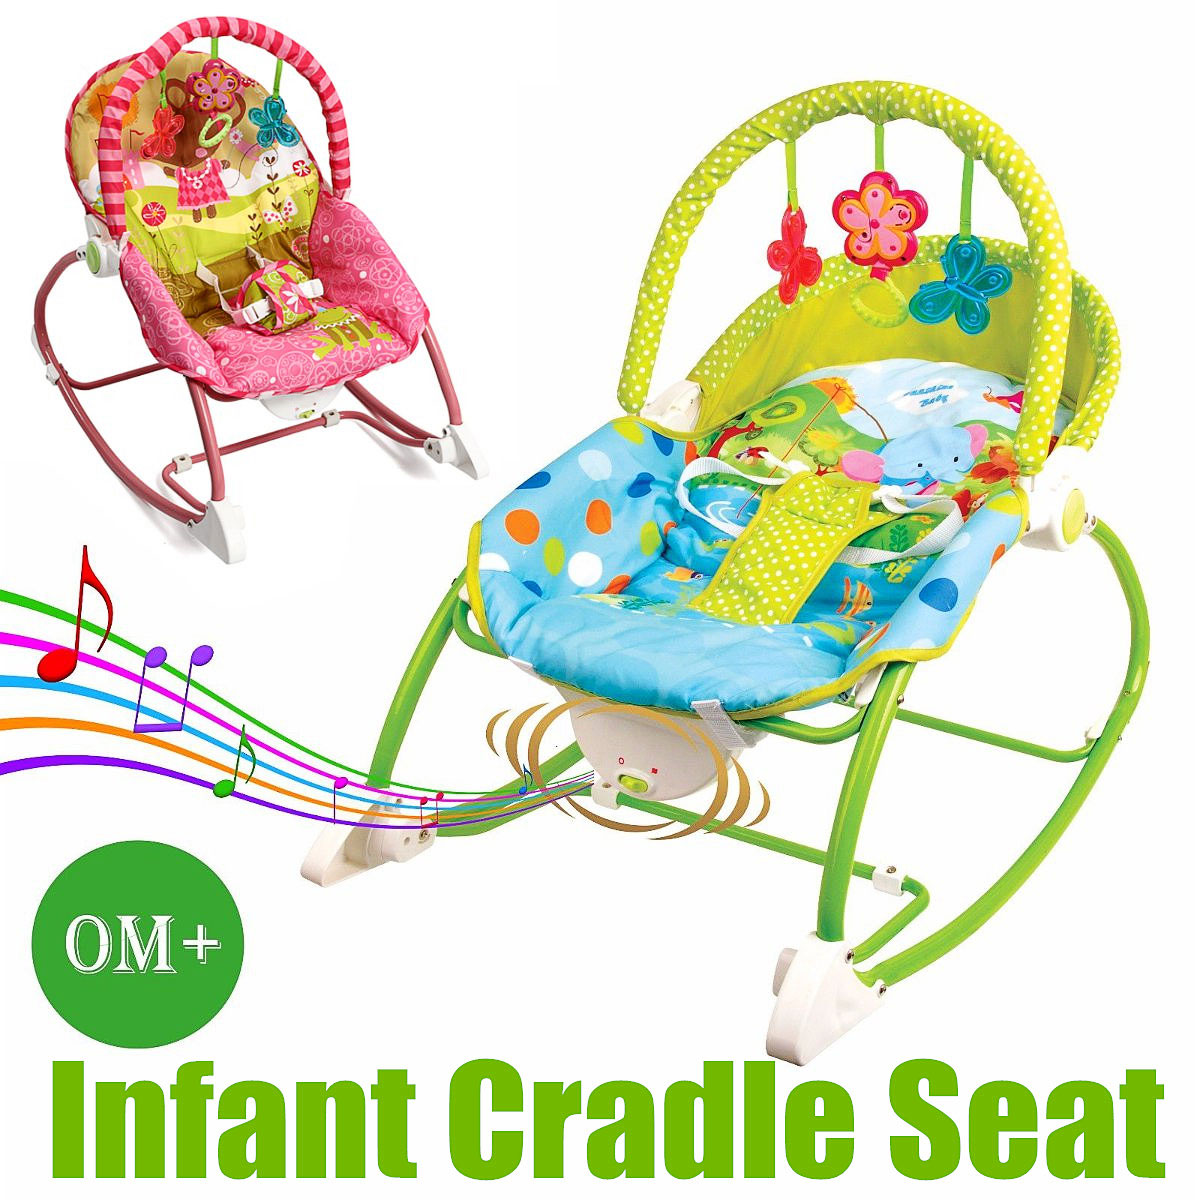 Eletric Rocking Chair With Music Infant Rocker Bouncer Cradle Seat Newborn Toddler Swing Vibration Toy Baby Cradle Swing Reborn